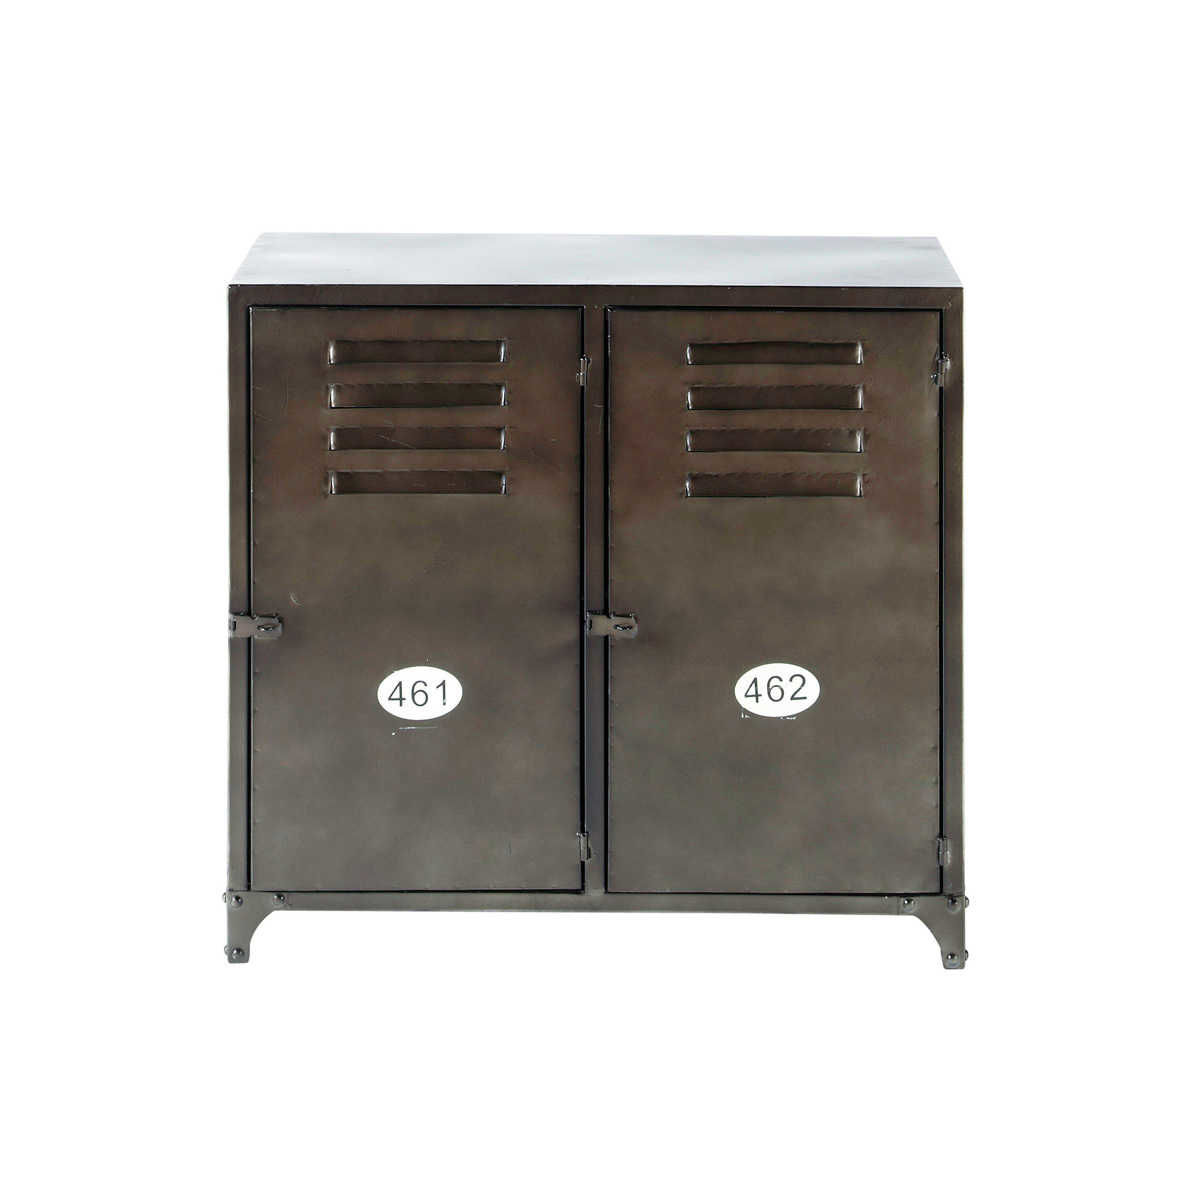 Industrial 2 door metal sideboard maisons du monde - Maison du monde uk ...